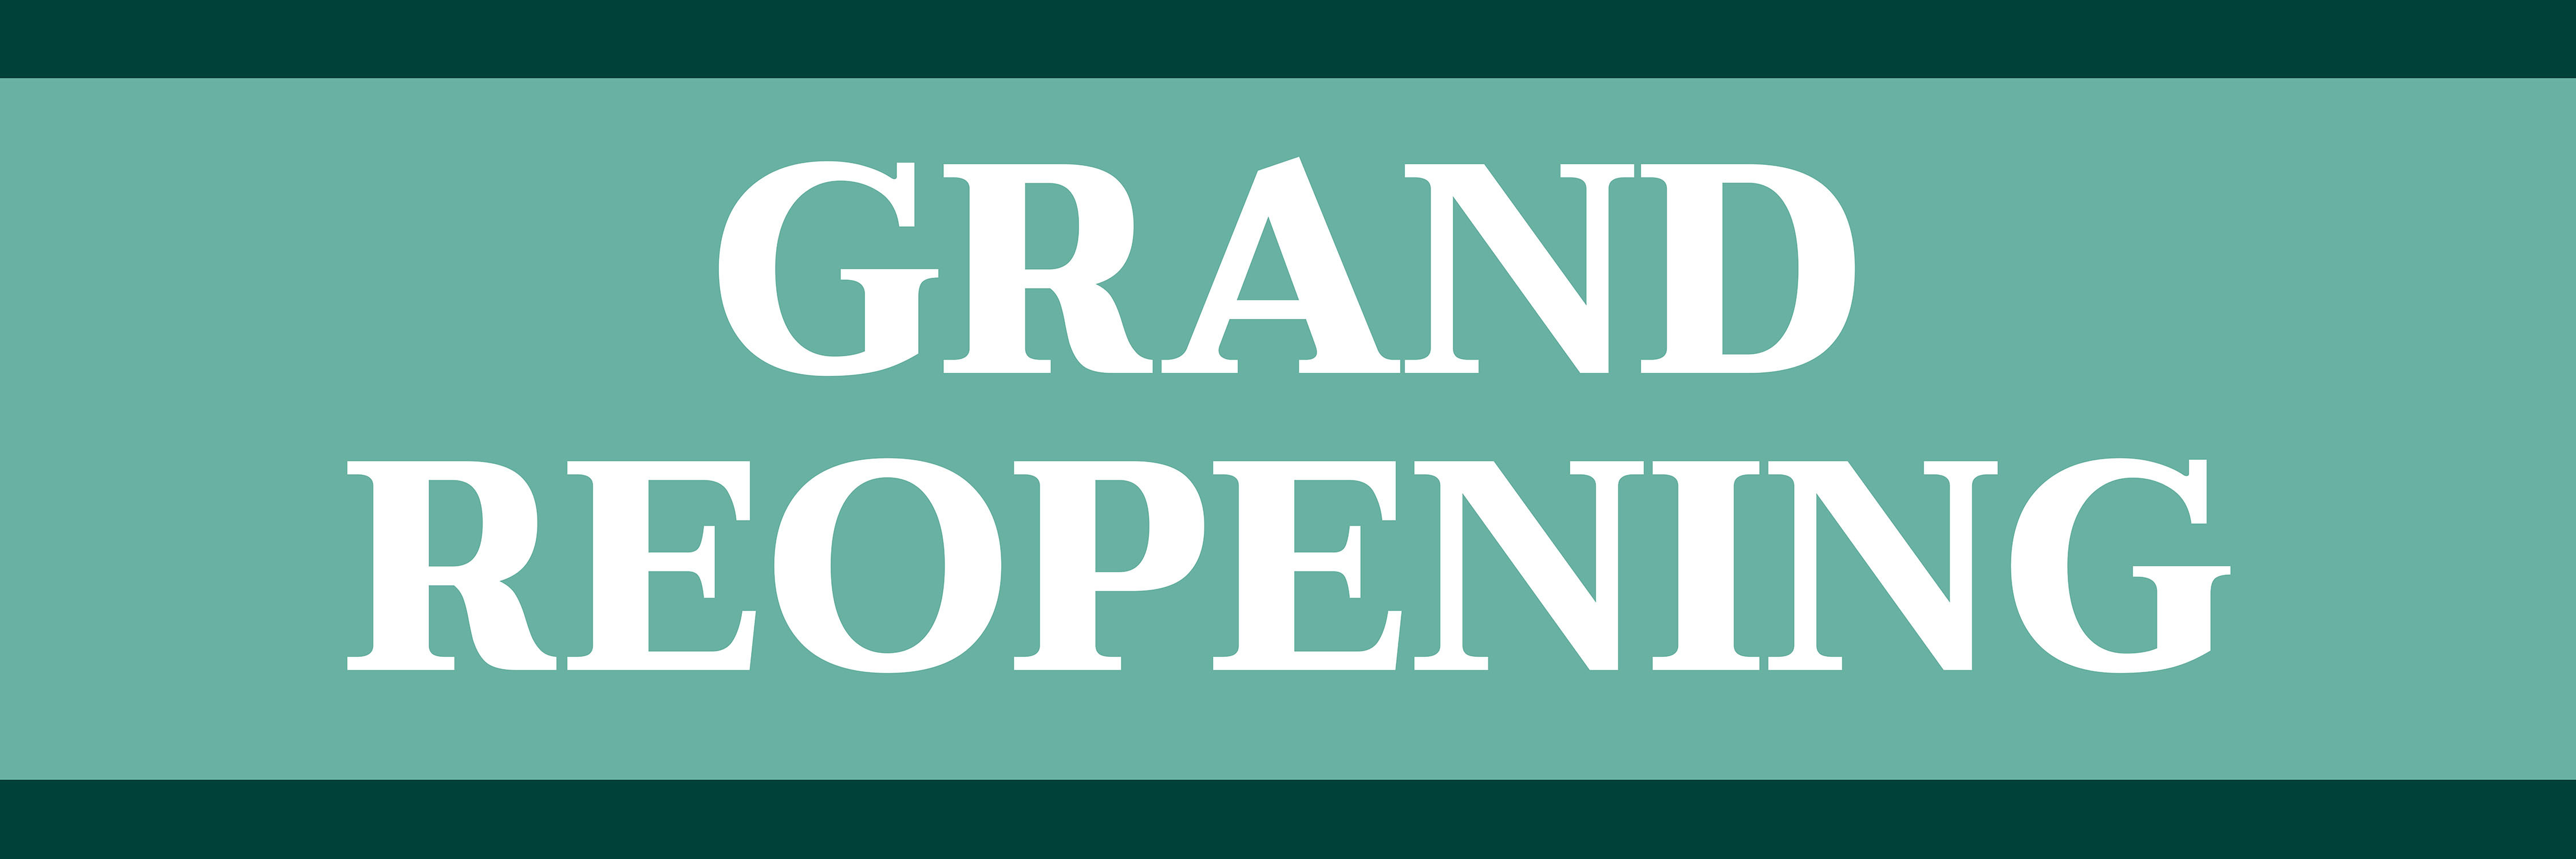 12' x 4' Banner – Grand Reopening